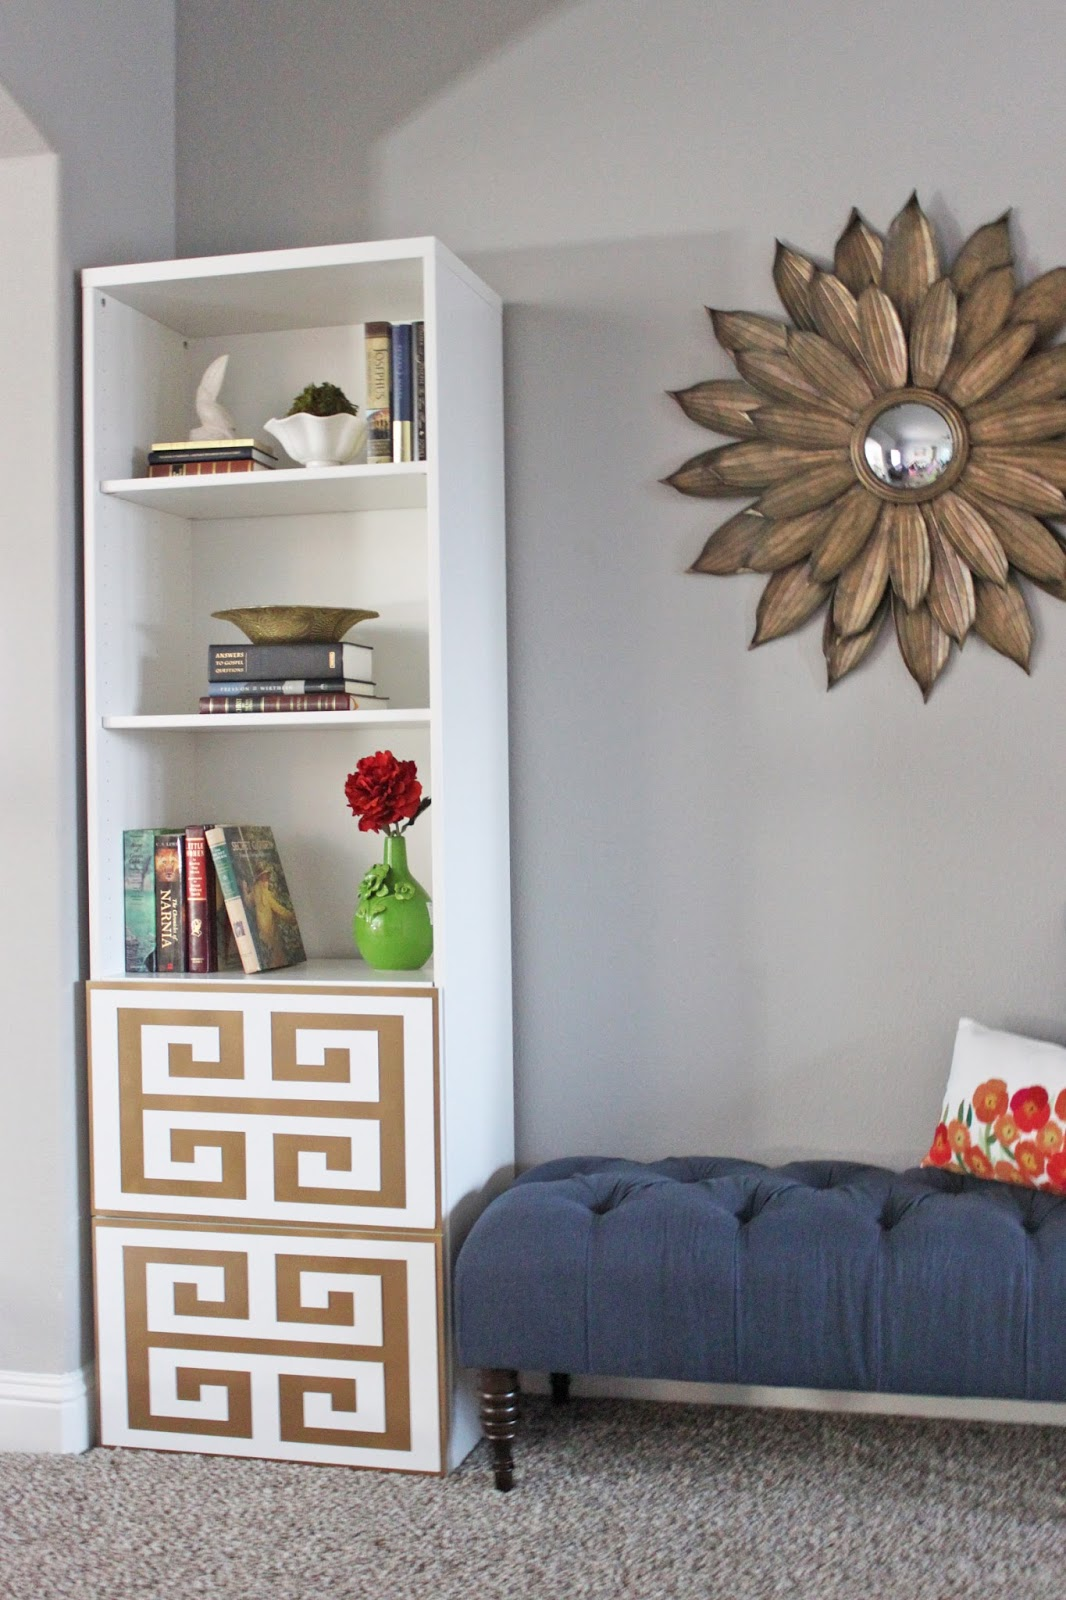 Ikea Hack Bookcase: A Little Of This, A Little Of That: IKEA Bookcase HACK